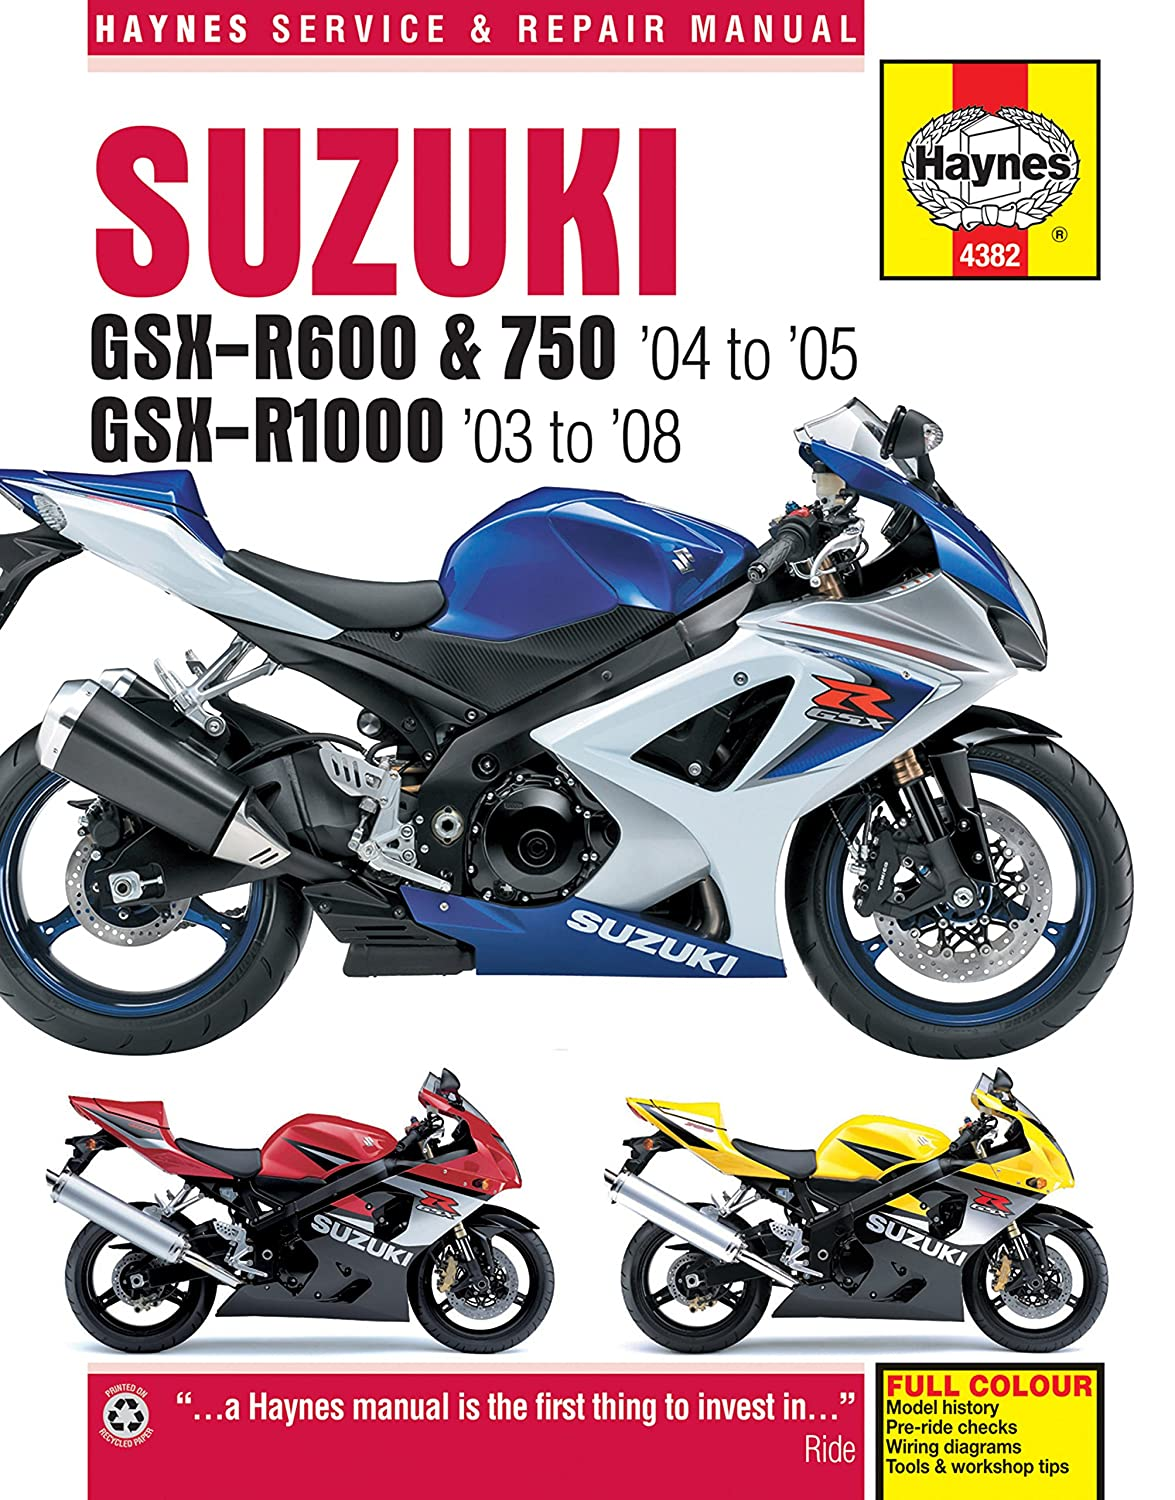 Amazon.com: Suzuki GSXR600 GSXR750 GSXR1000 GSXR 600 750 1000 HAYNES REPAIR  MANUAL 4382: Automotive